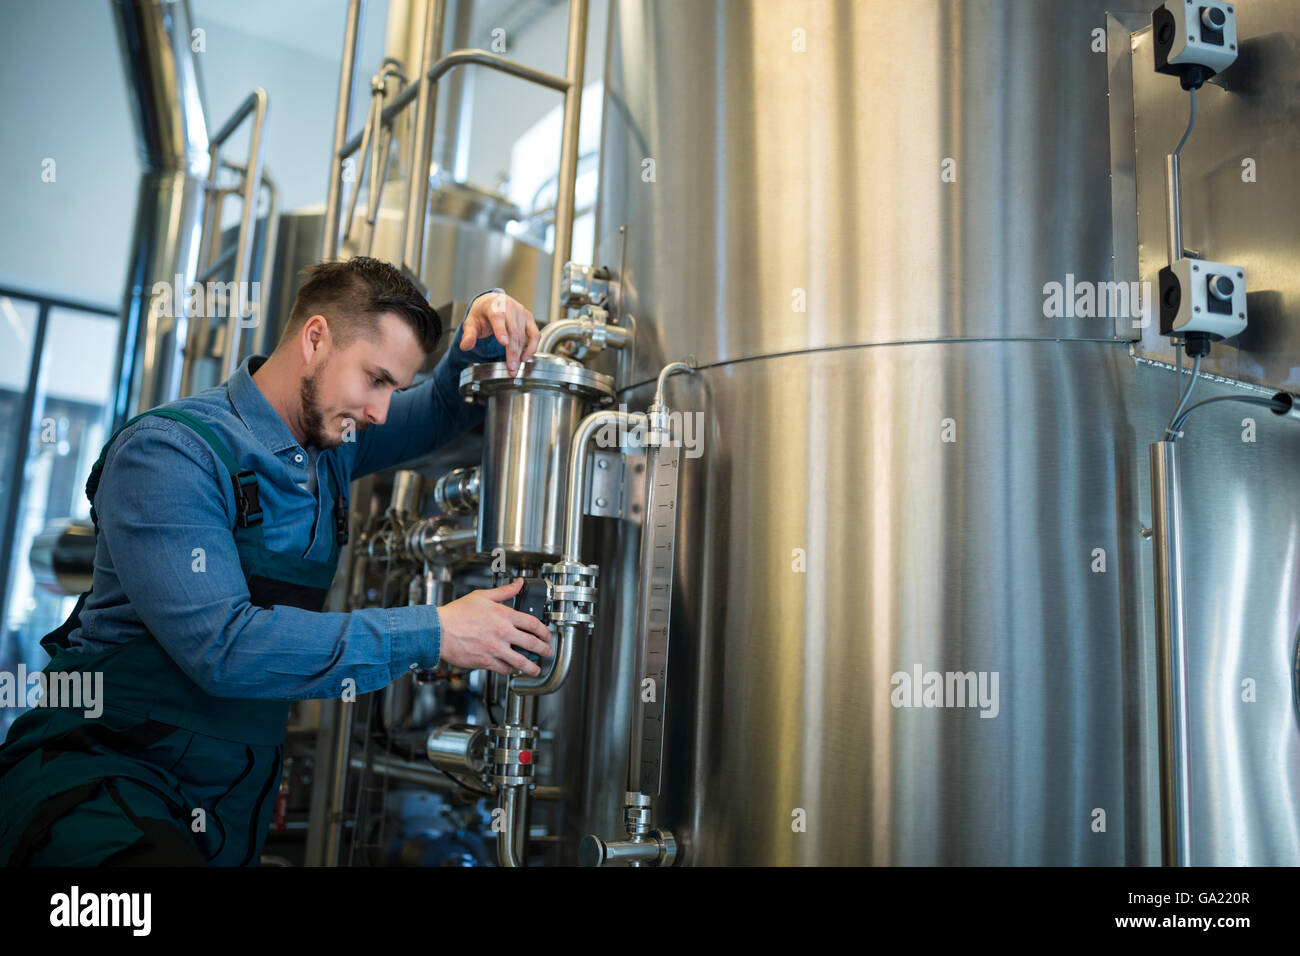 Brewer checking pressure at brewery - Stock Image